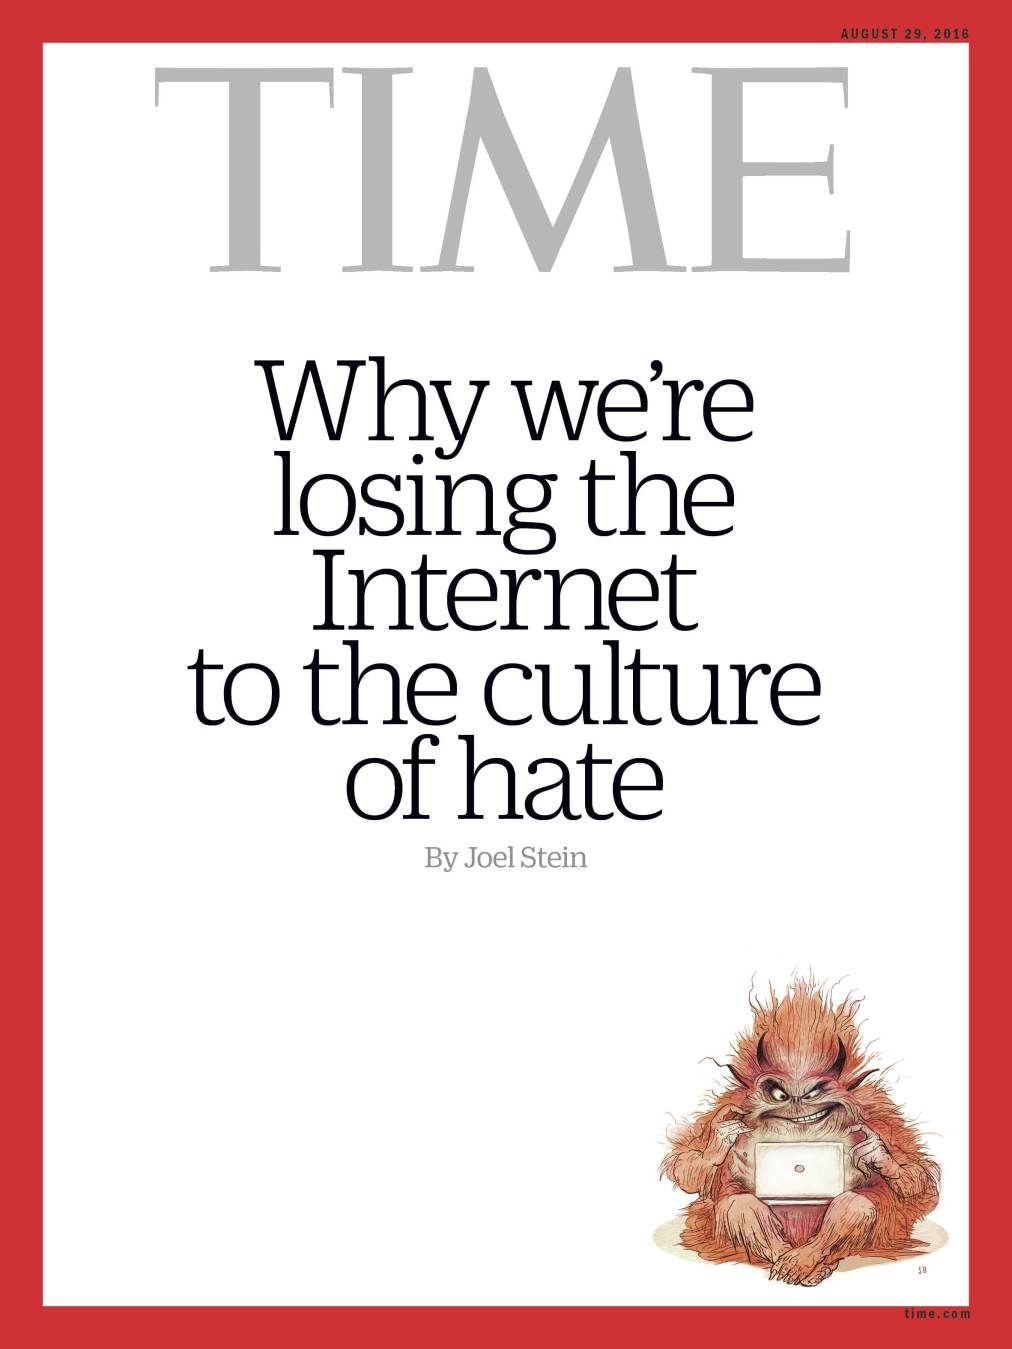 How Trolls Are Ruining the Internet - They're turning the web into a cesspool of aggression and violence. What watching them is doing to the rest of us may be even worse.